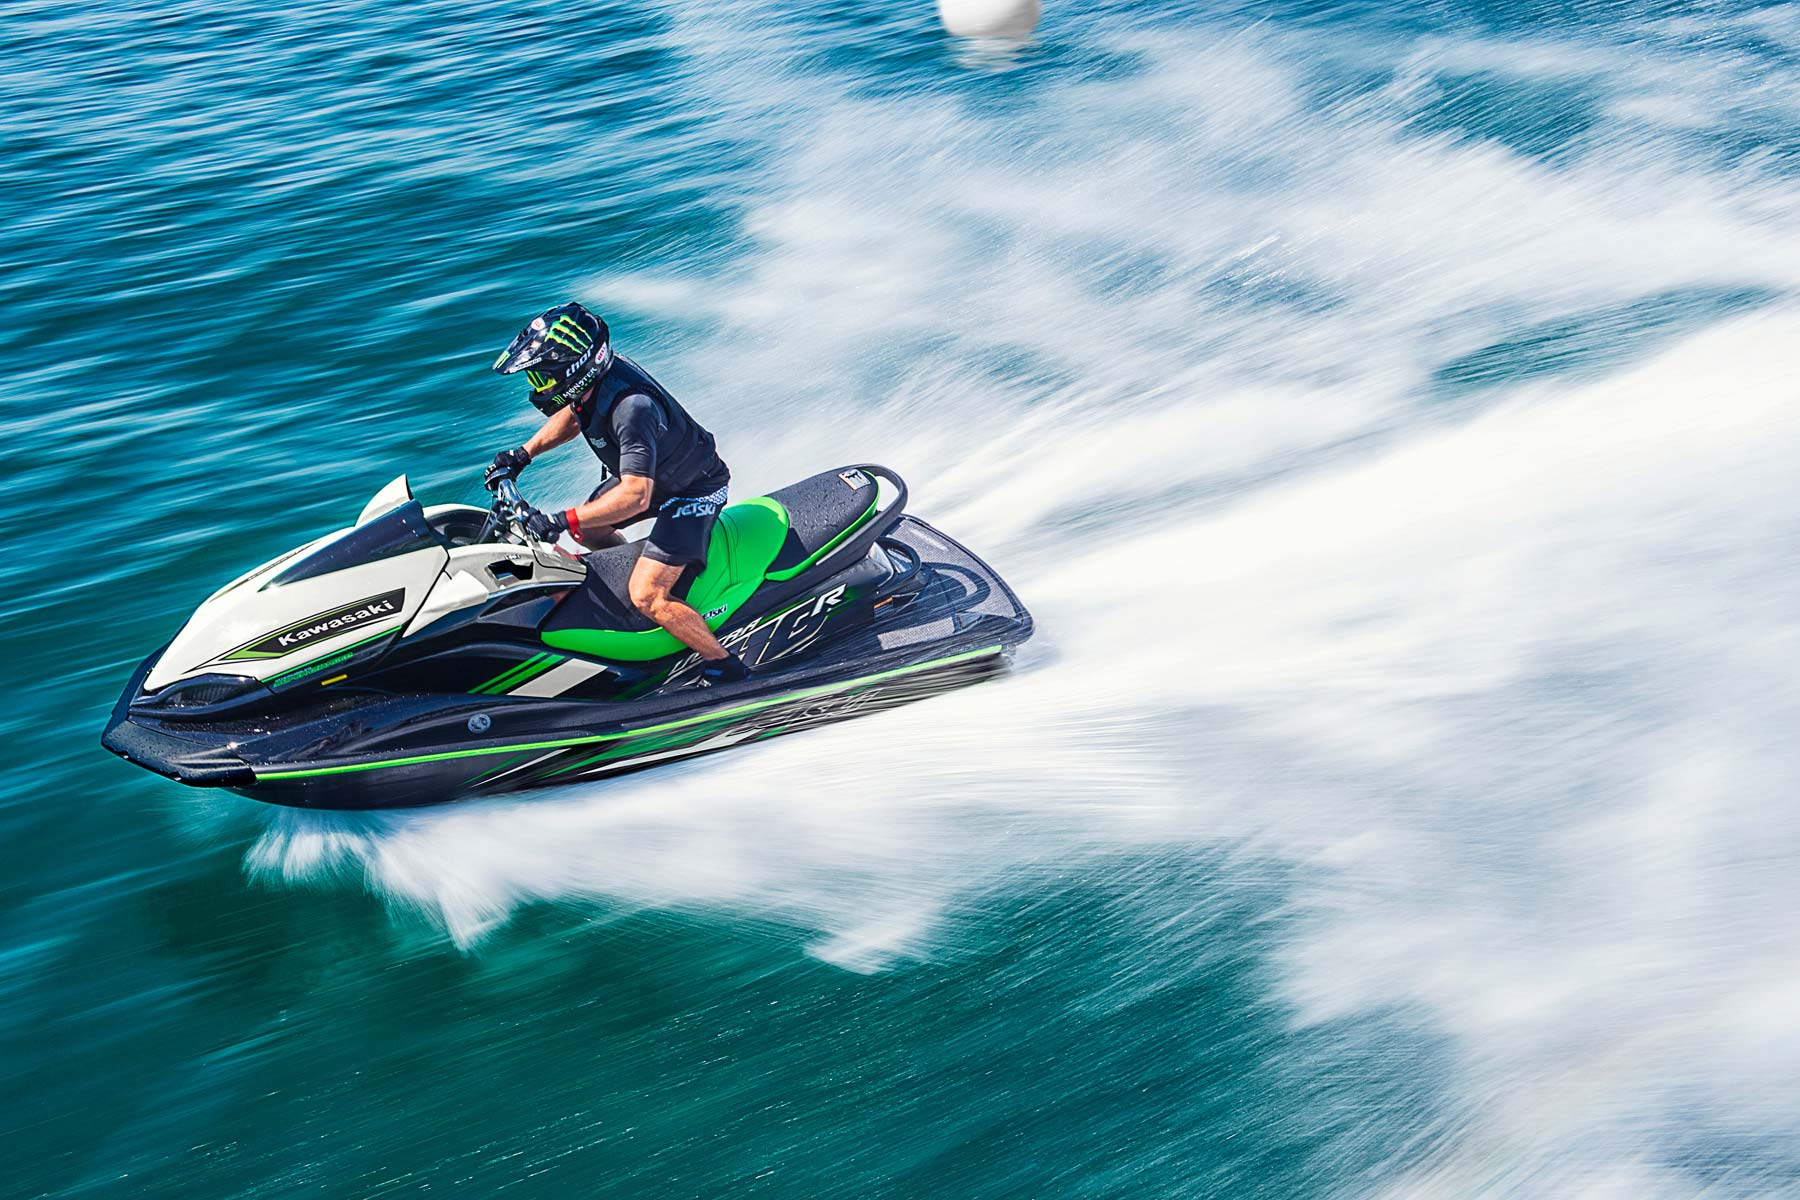 Watercraft: The 10 Best Jet Skis | Improb